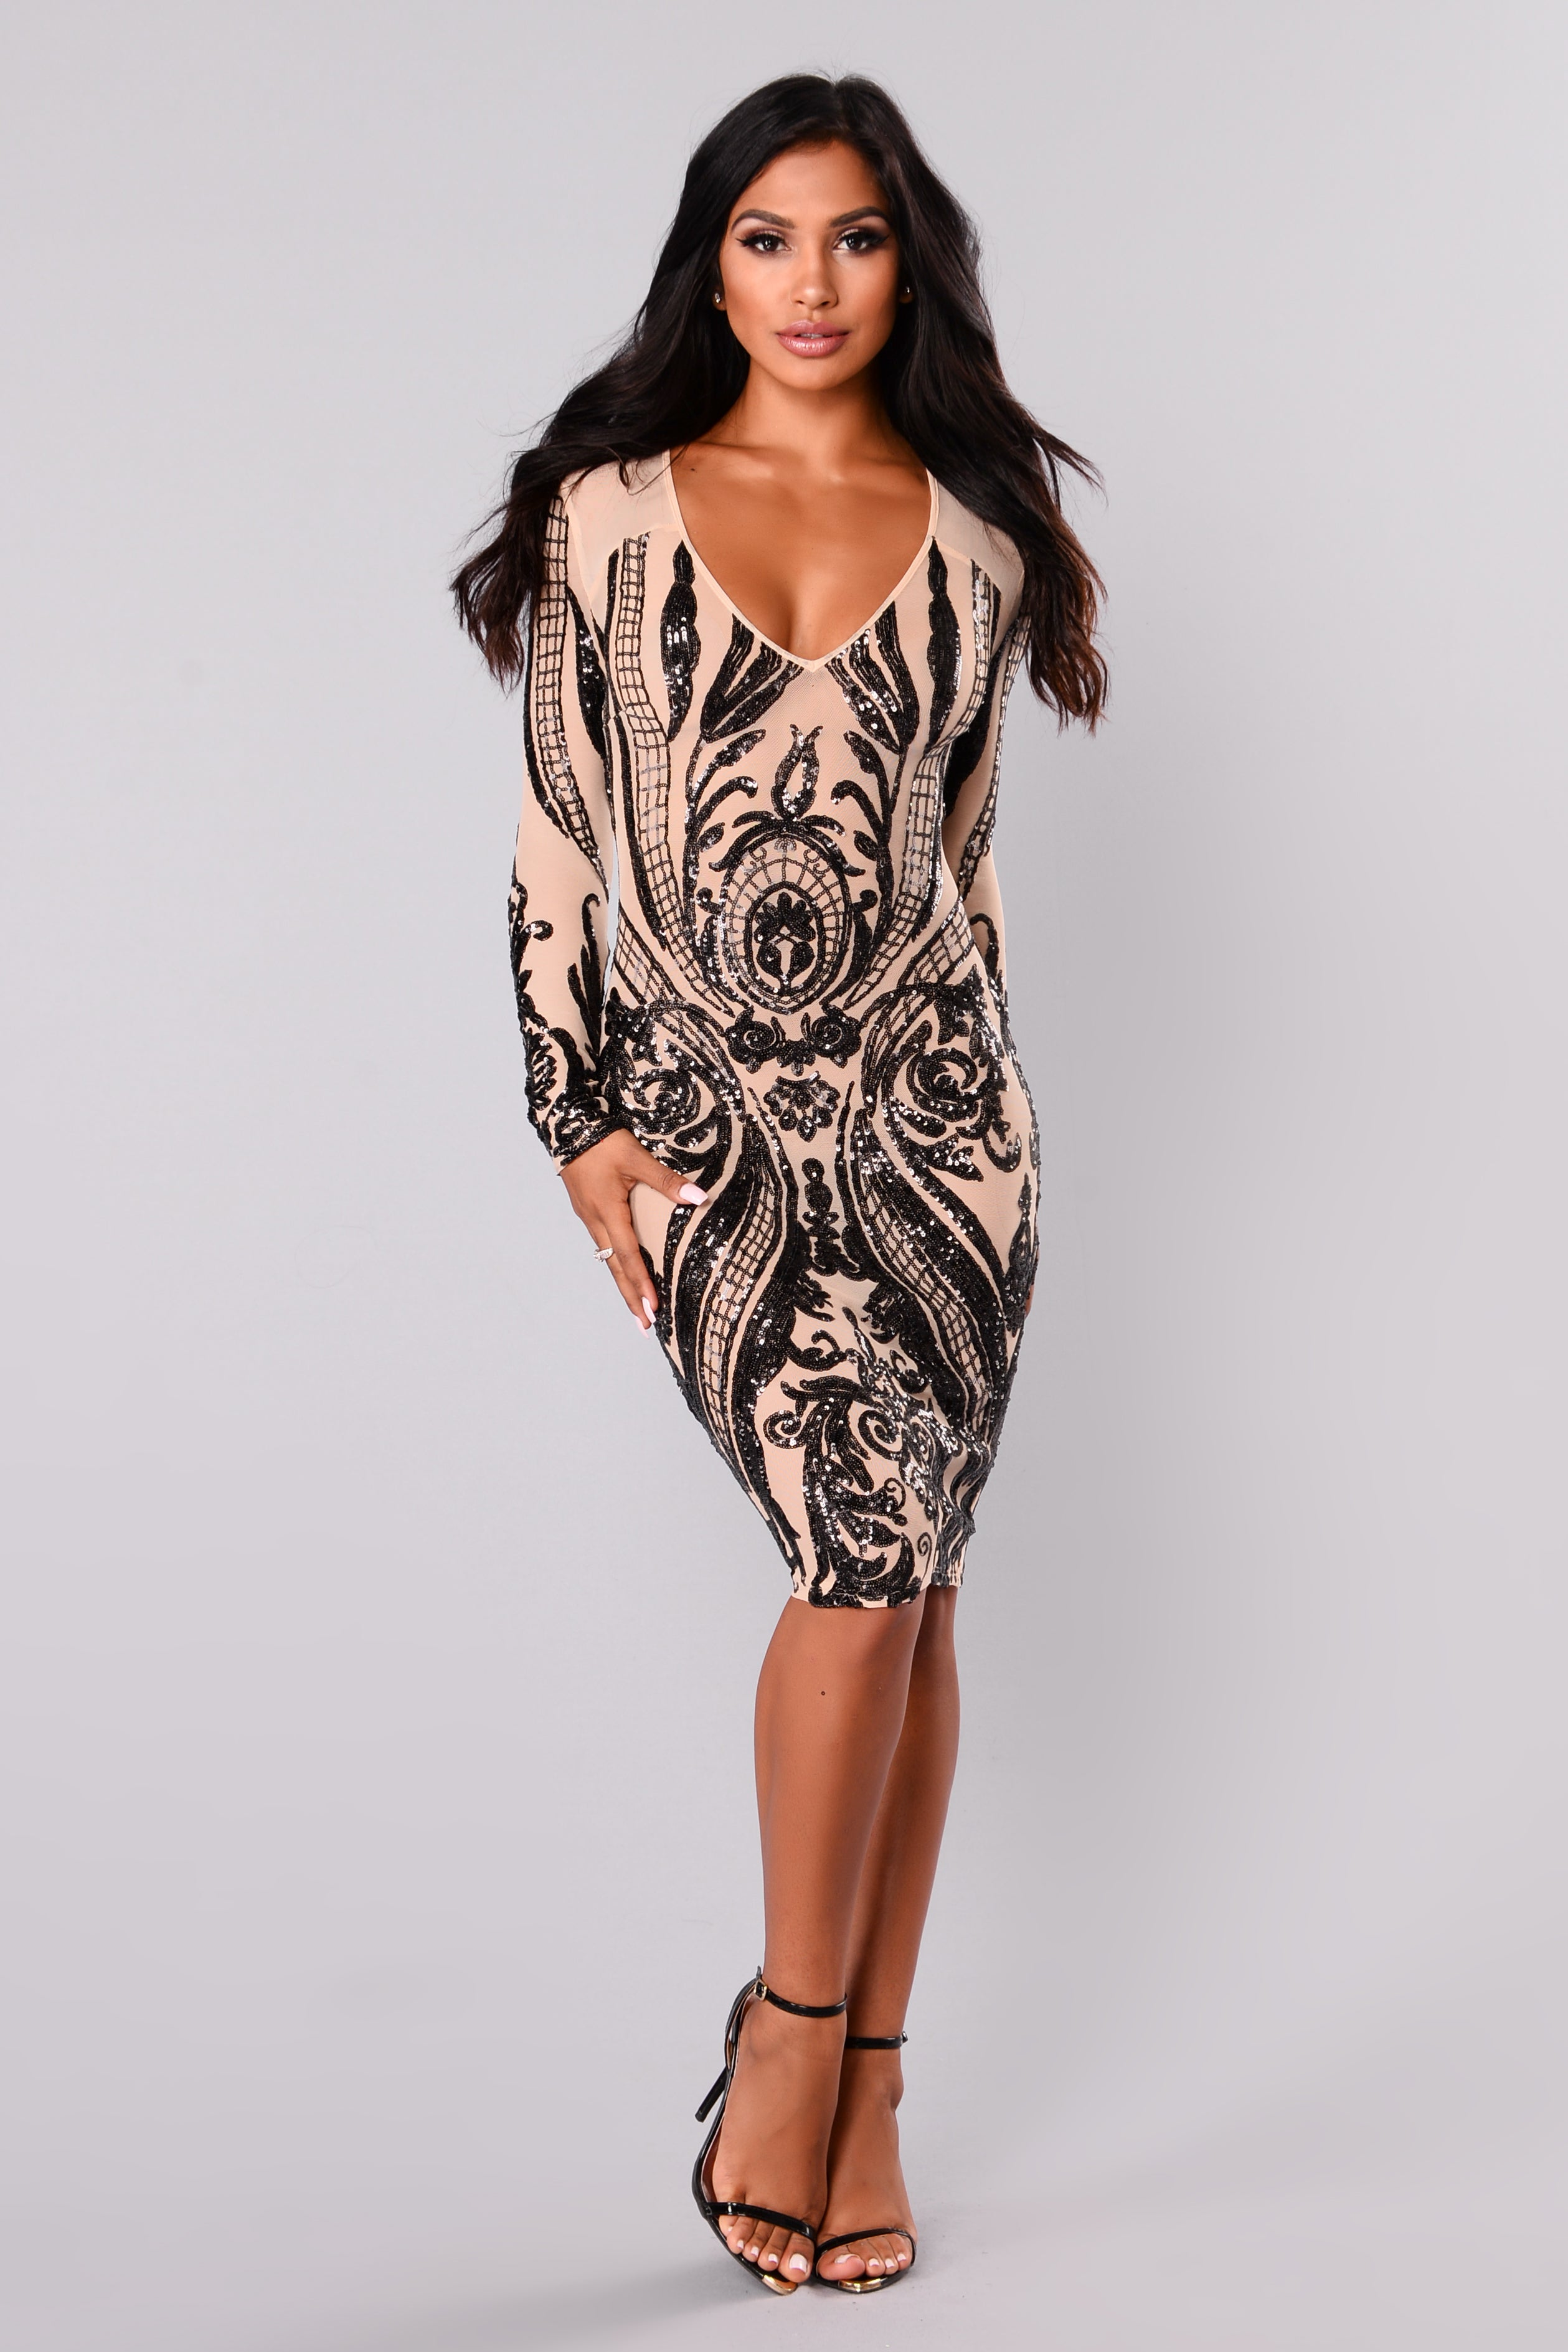 Miss Fortune Sequin Dress - Nudeblack-4986